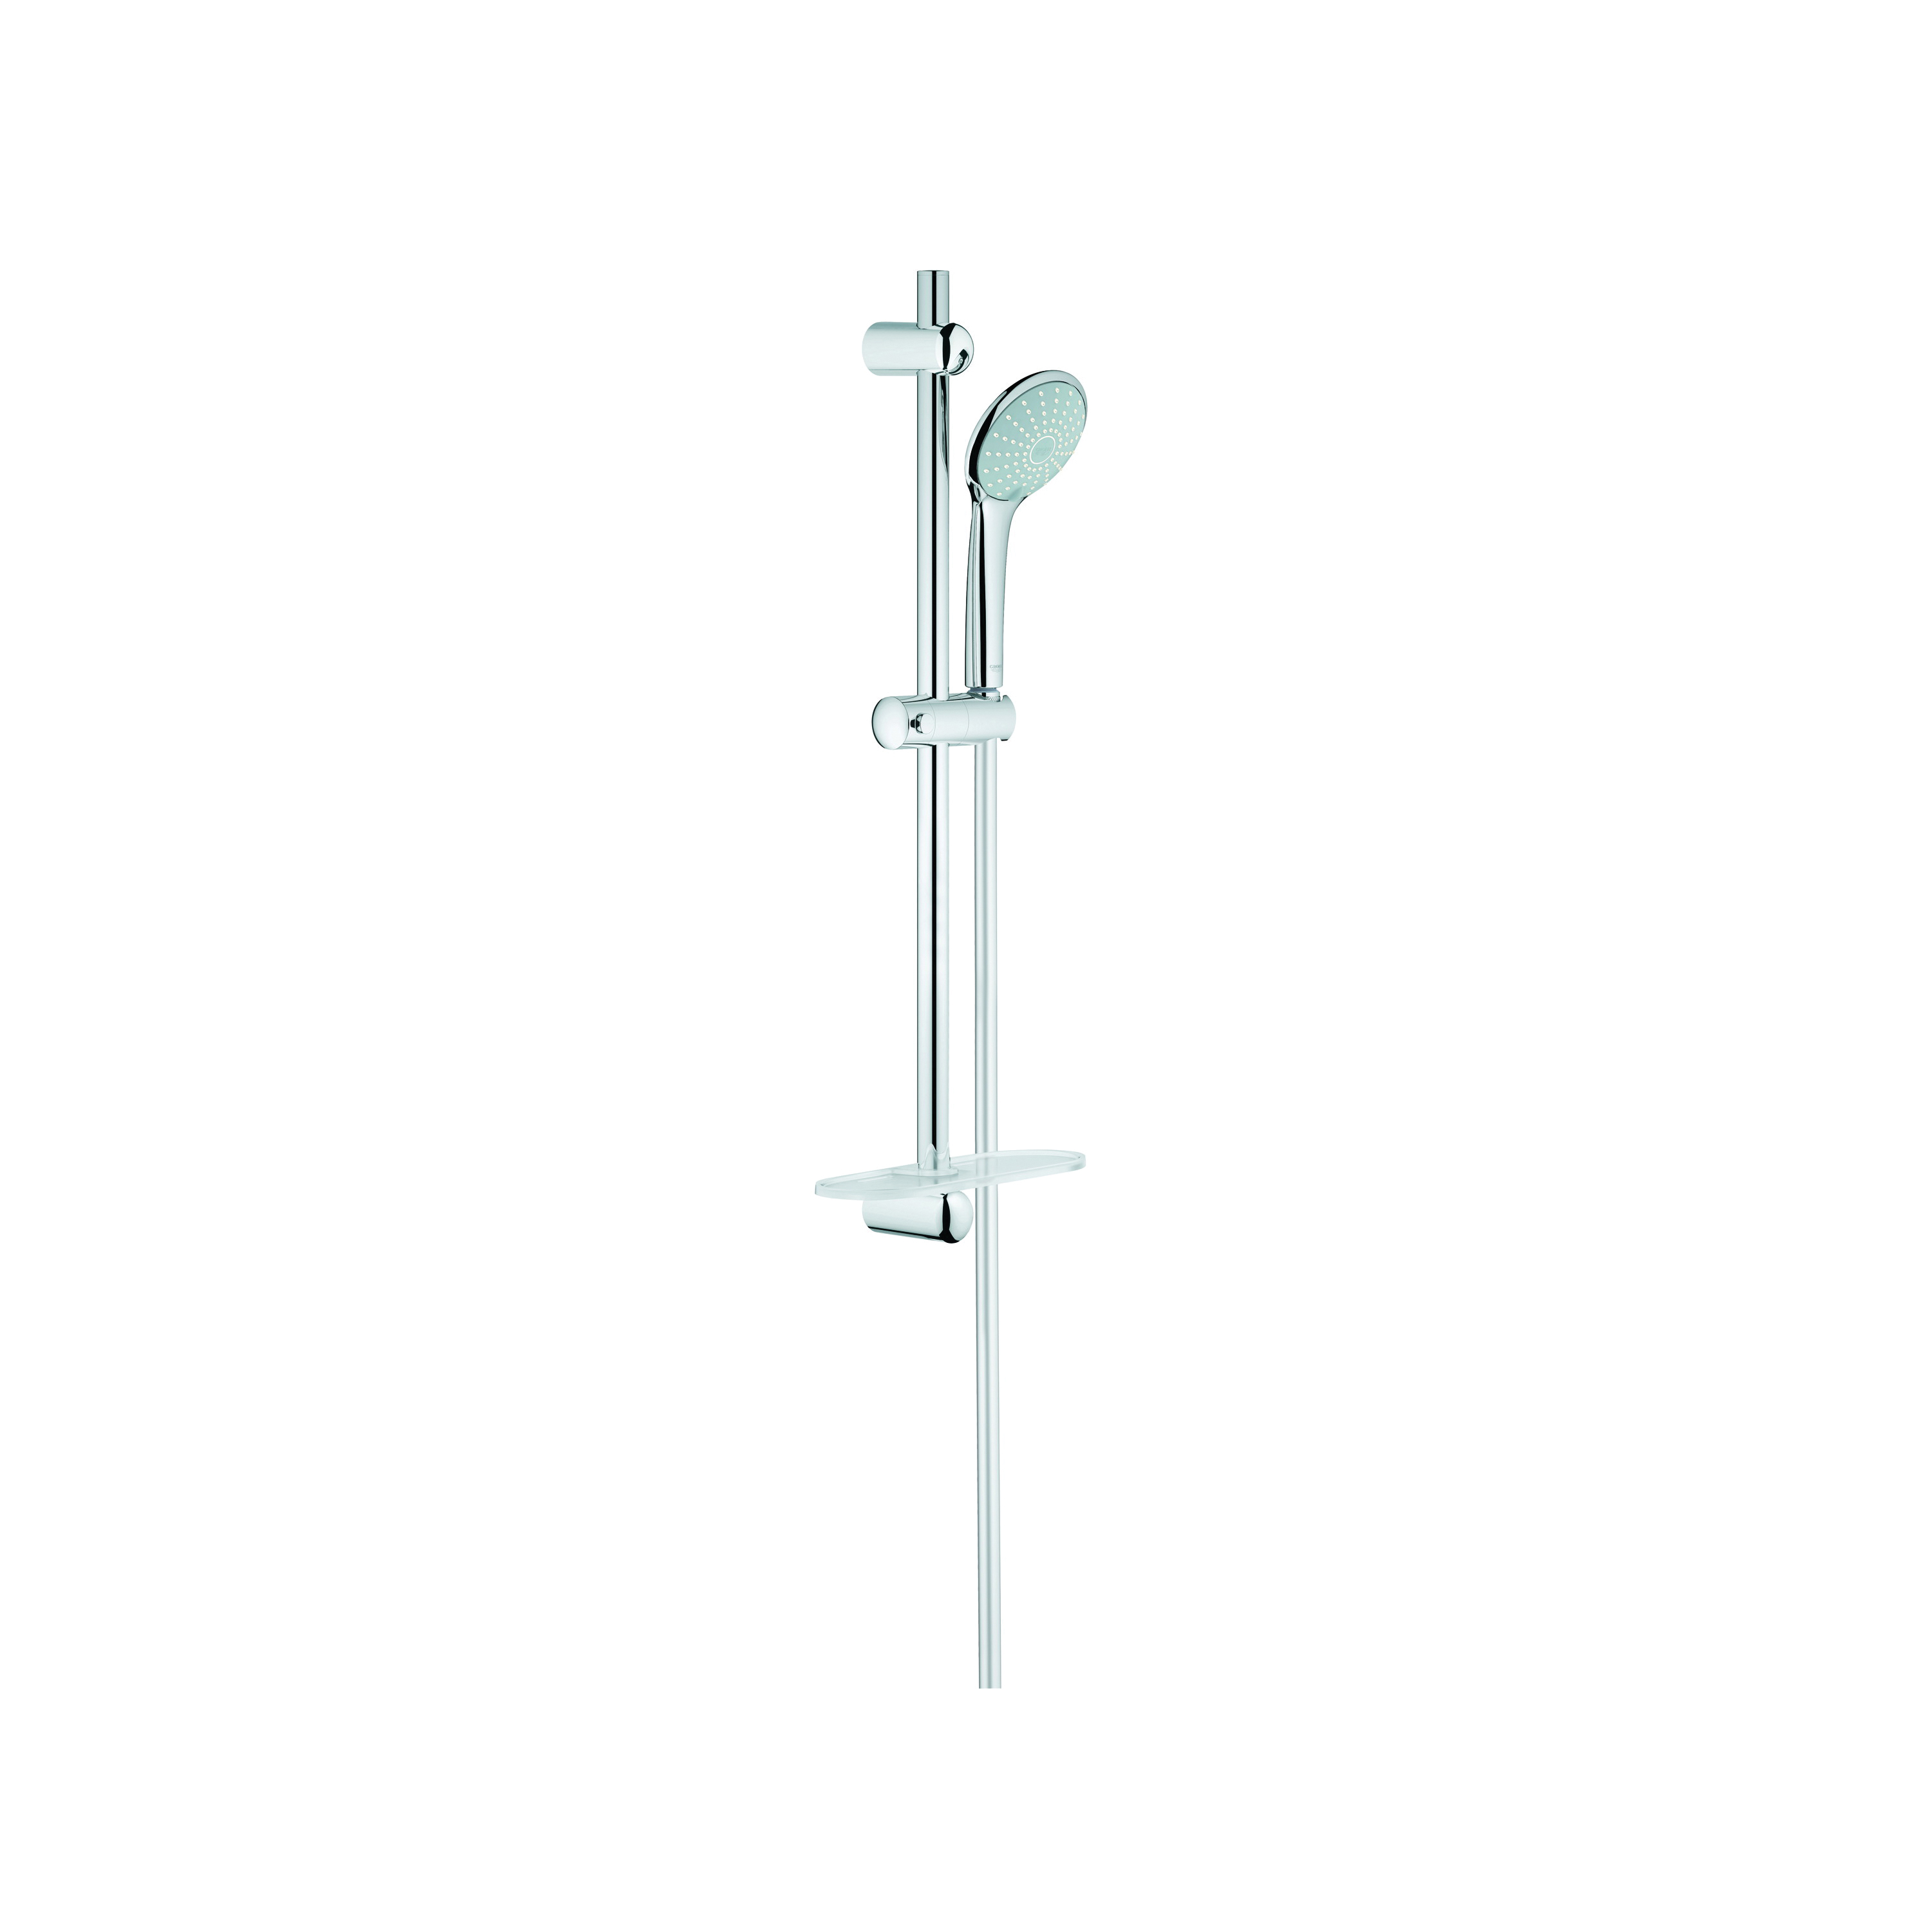 GROHE 27242001 Euphoria 110 Duo Shower Rail Set, 2.5 gpm, 1750 mm L Hose, Chrome Plated, Import